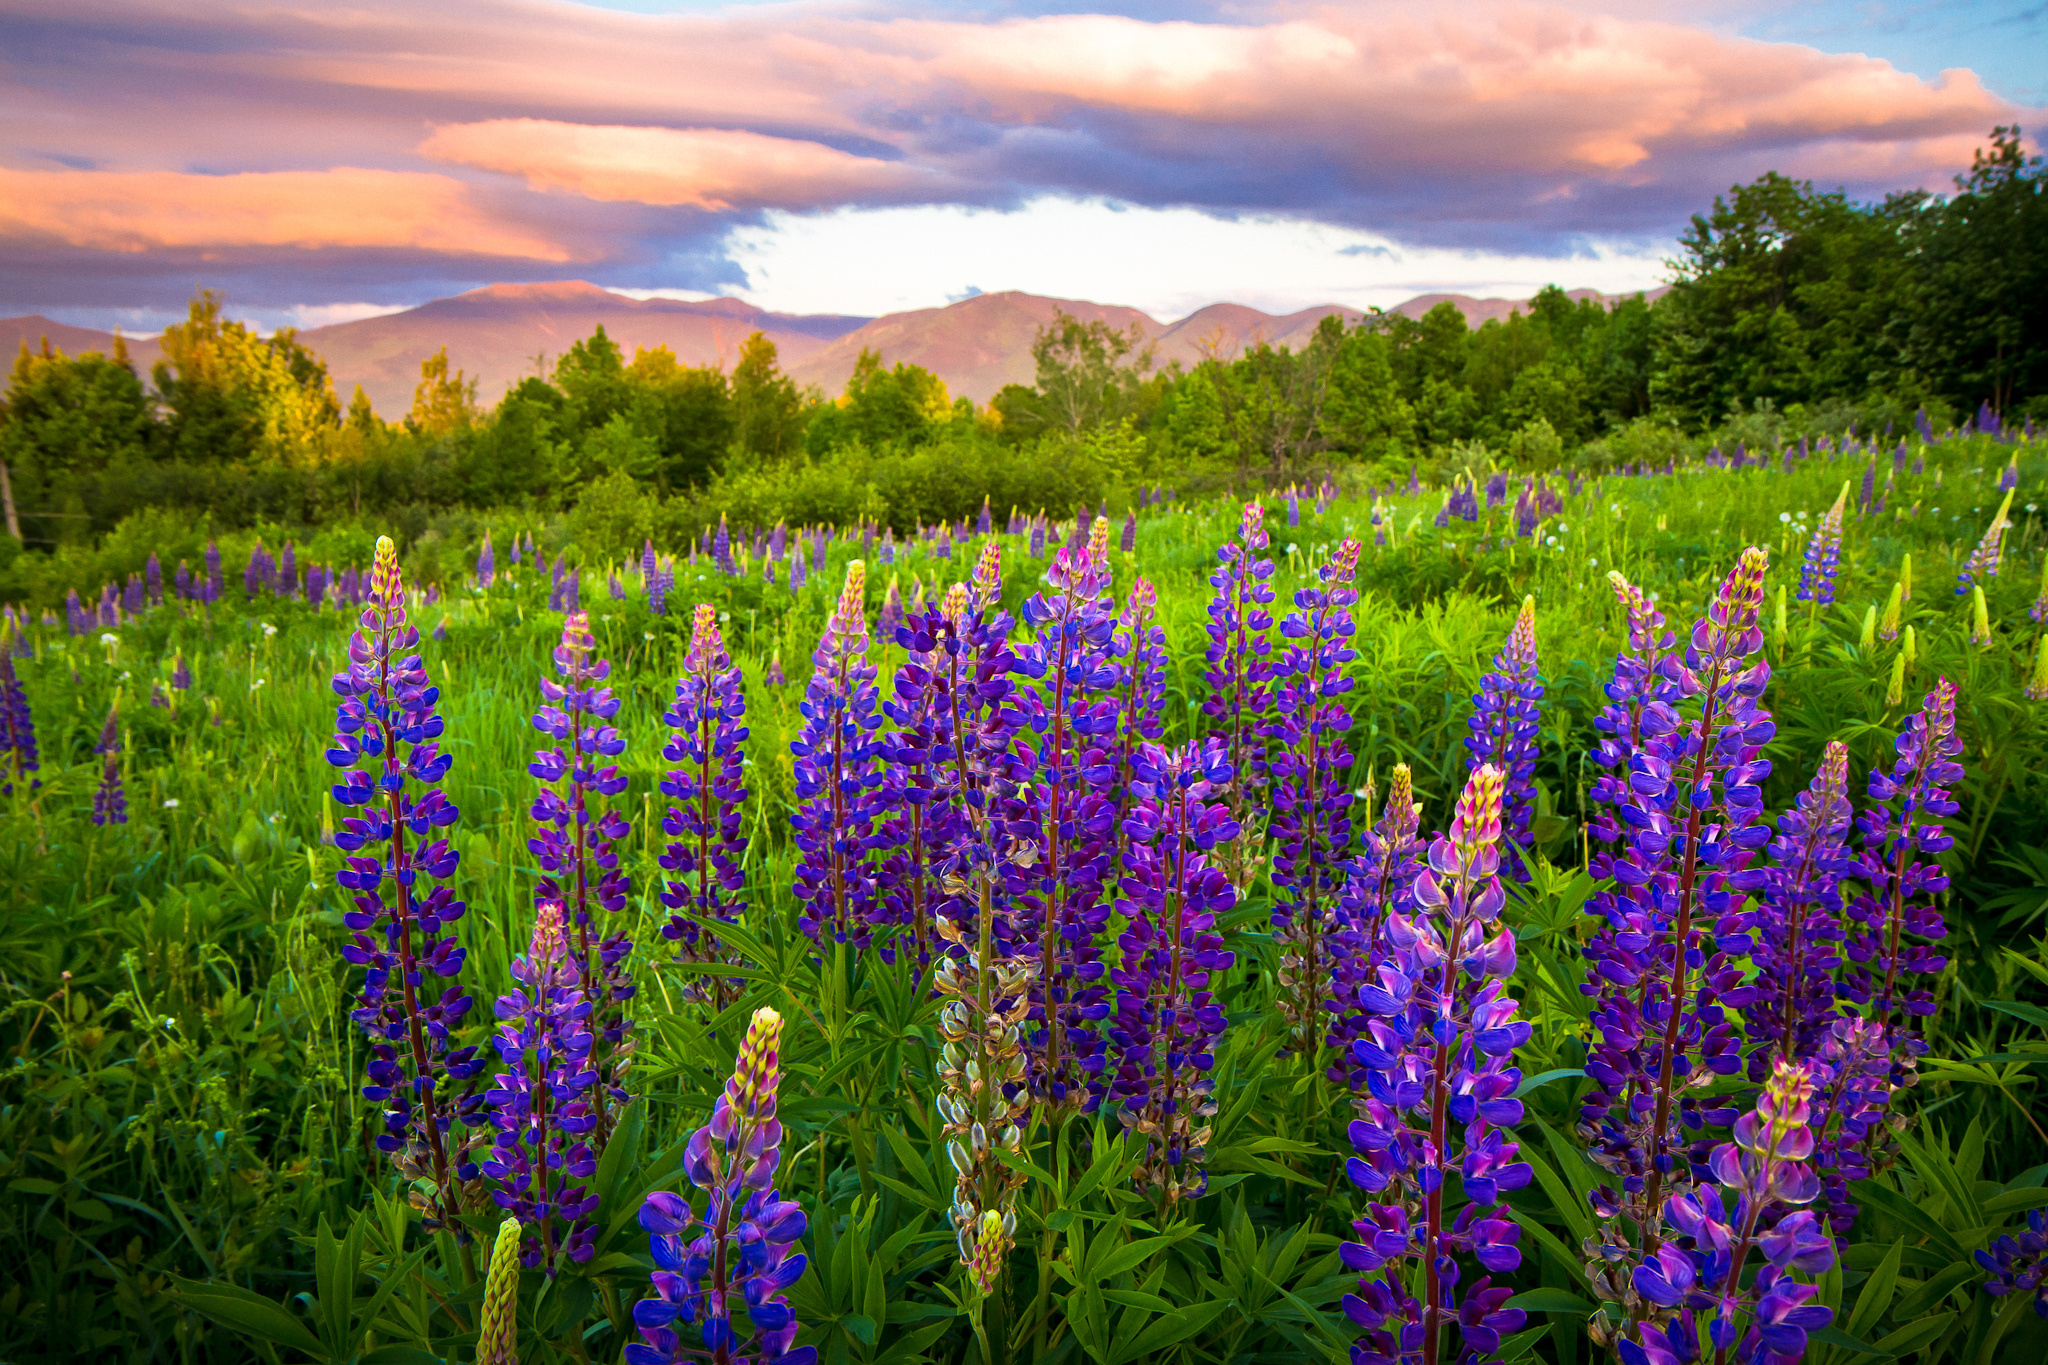 New Hampshire lupine meadow wallpaper 2048x1365 153332 2048x1365